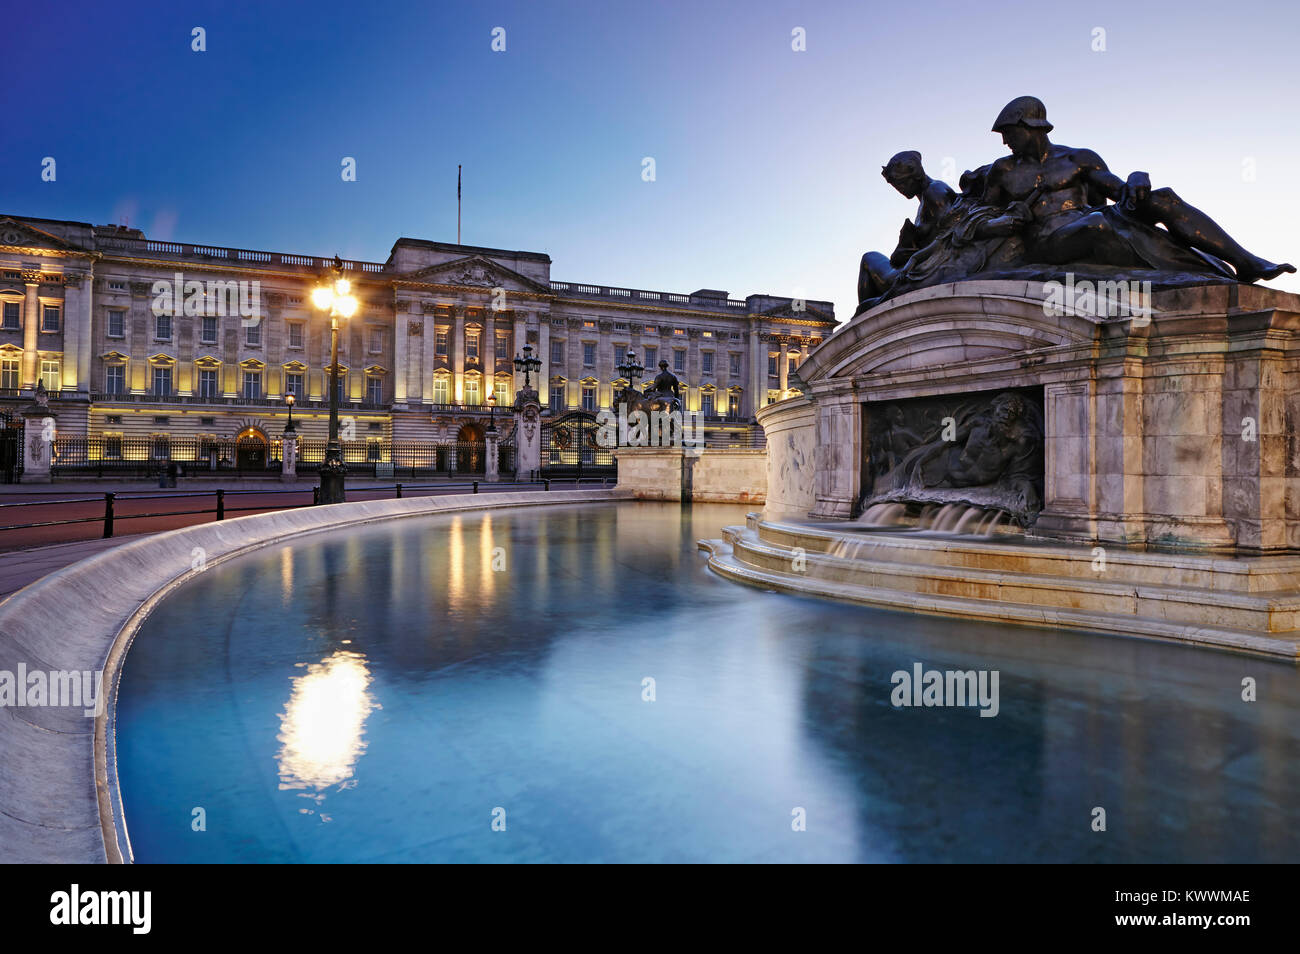 Queen Victoria Memorial,  Buckingham Palace, London, England - Stock Image